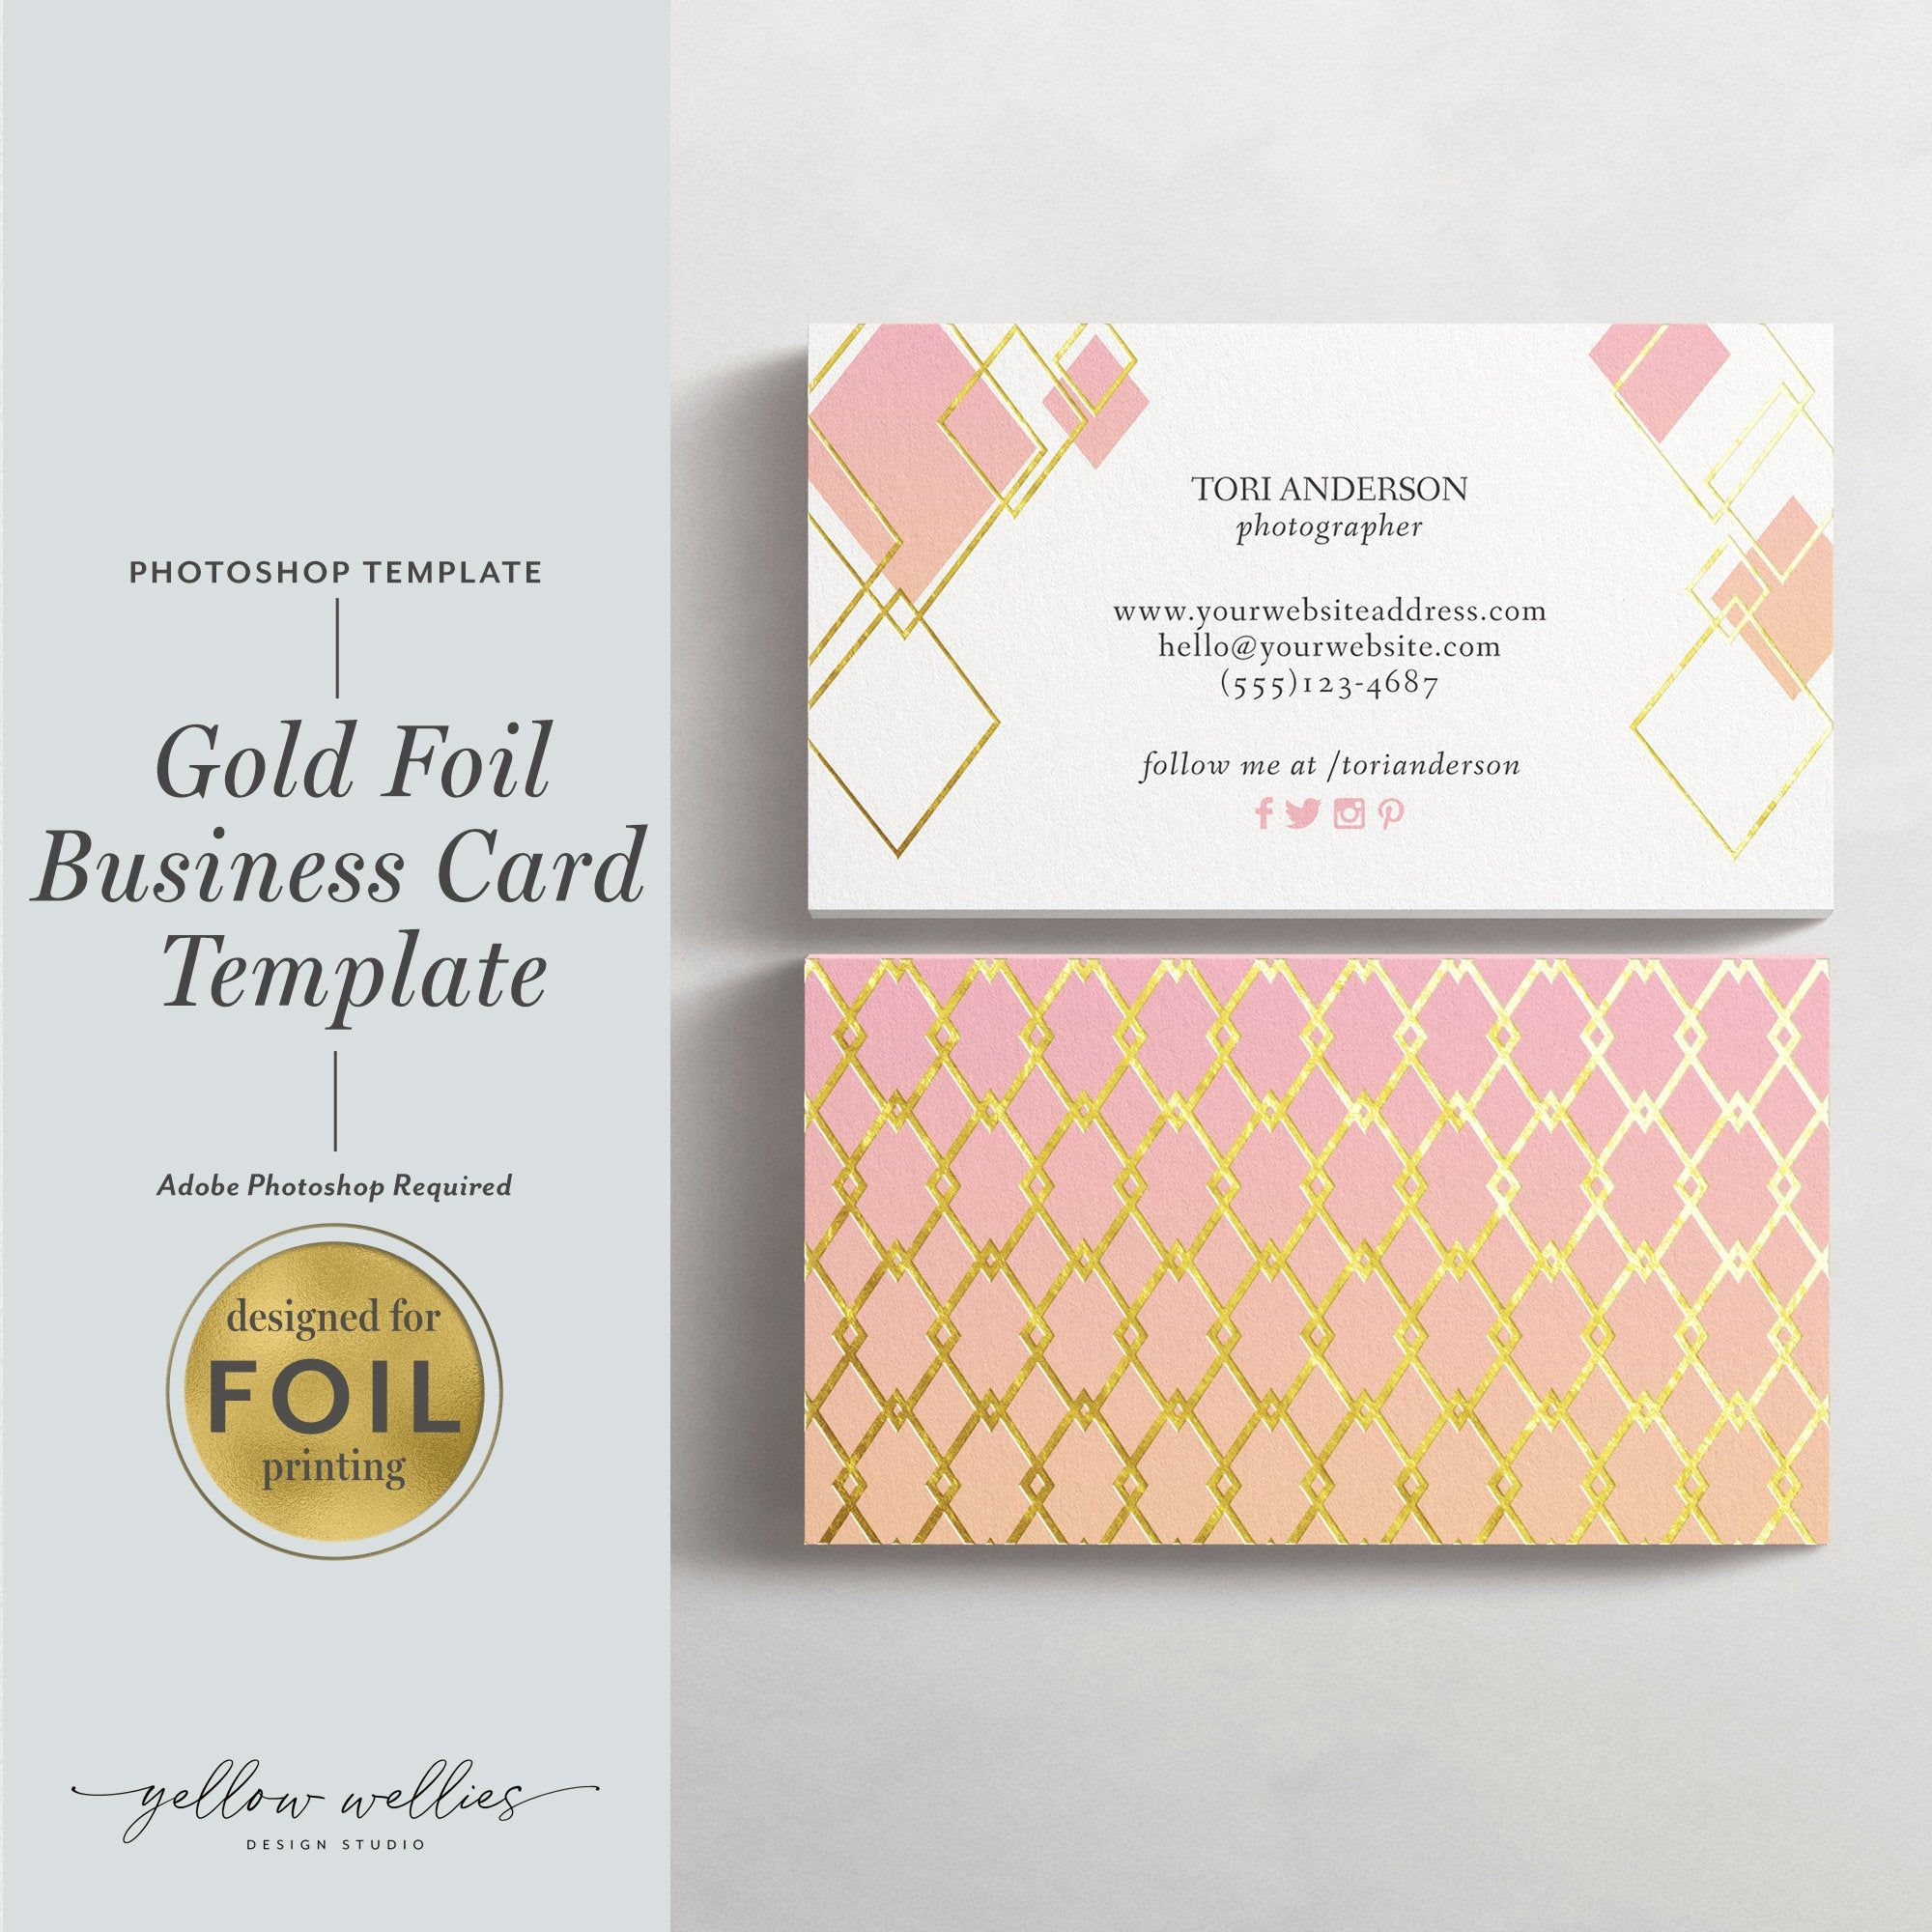 Photoshop Business Card Template Gold Foil Moo Business Card Etsy In 2021 Moo Business Cards Business Card Template Business Cards Creative